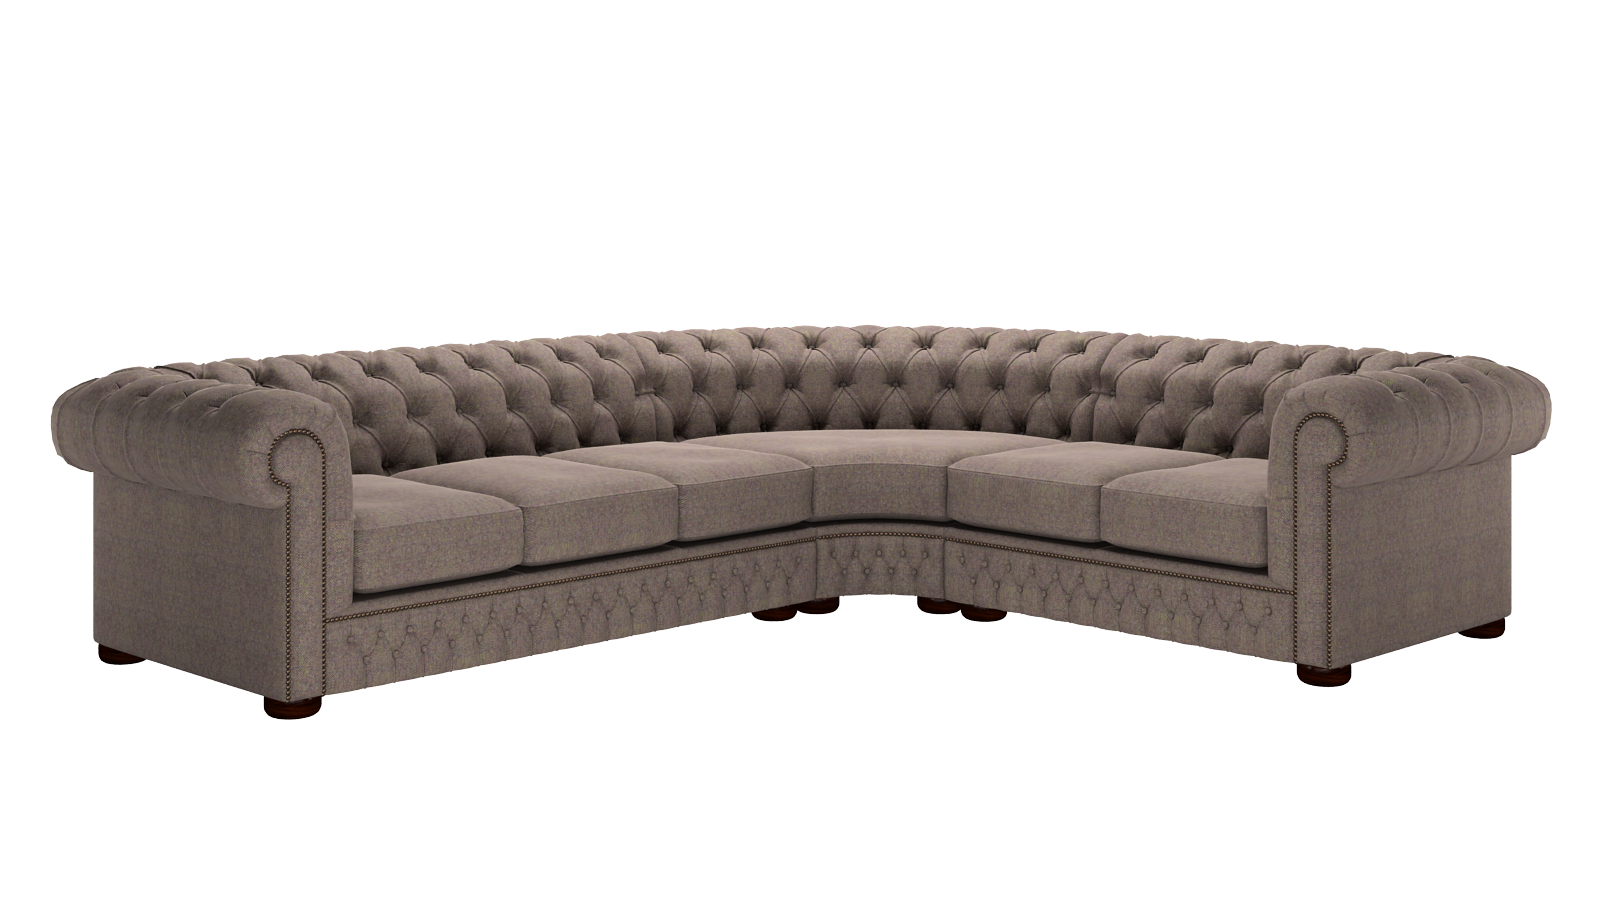 Couch back view png. Find the perfect sofa